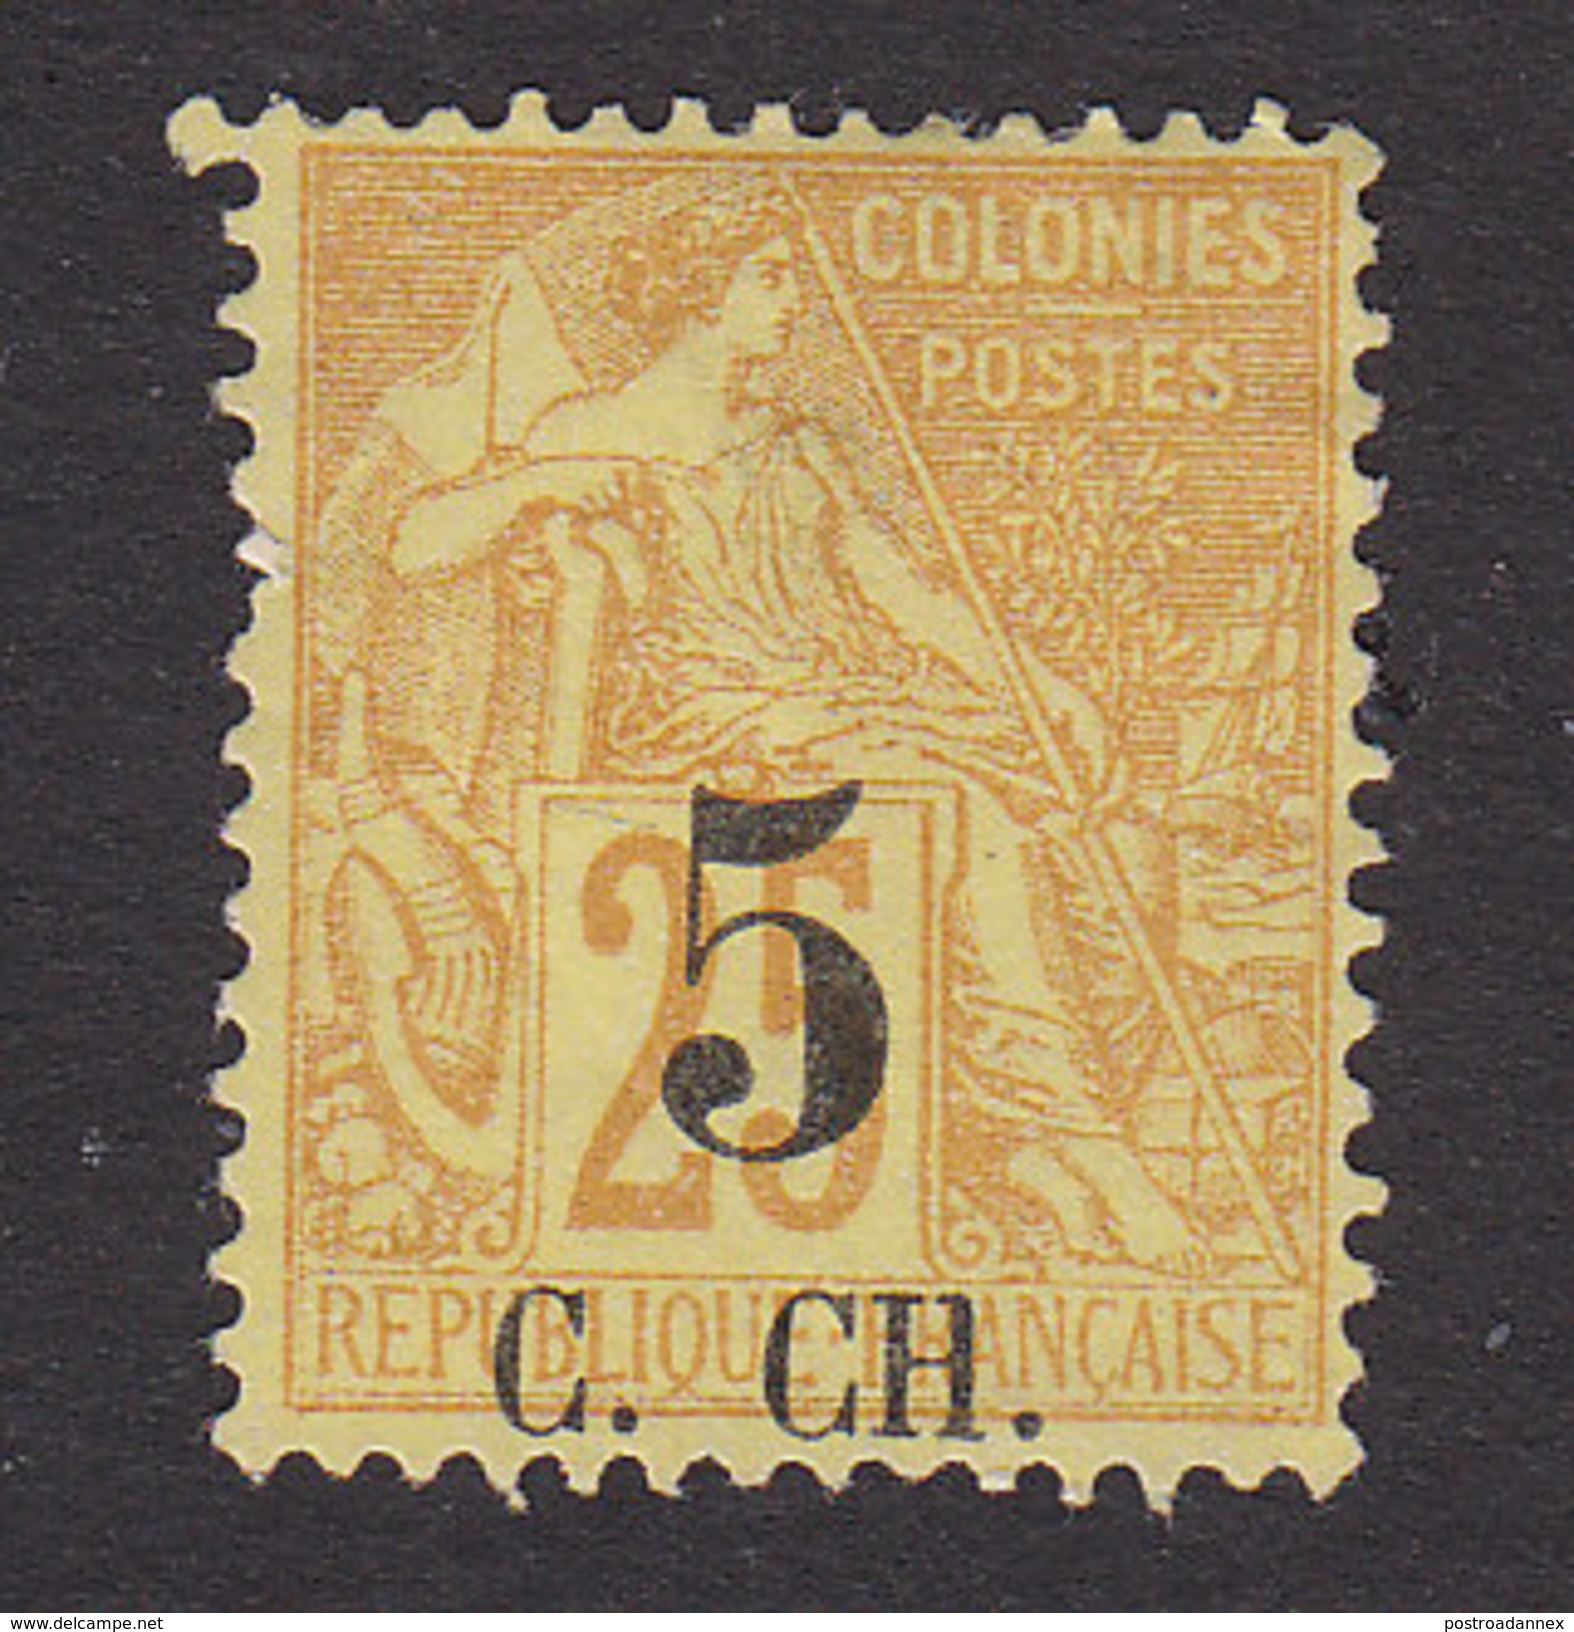 Cochin Chin, Scott #3, Used, French Colonies Surcharged, Issued 1886 - Cochinchine (1886-1887)